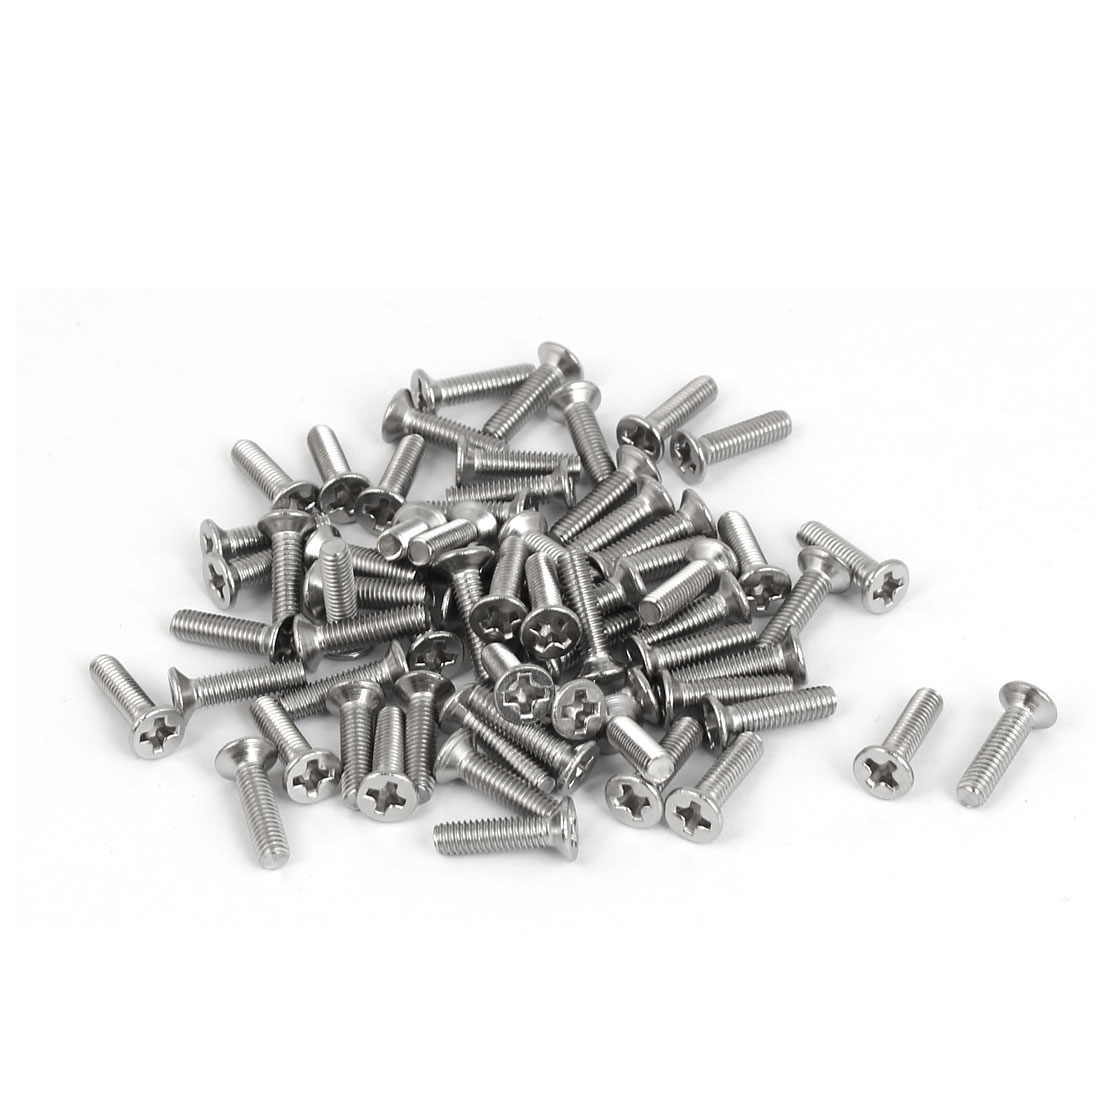 M3 x 12mm 316 Stainless Steel Phillips Drive Flat Head Screws Silver Tone 60 Pcs